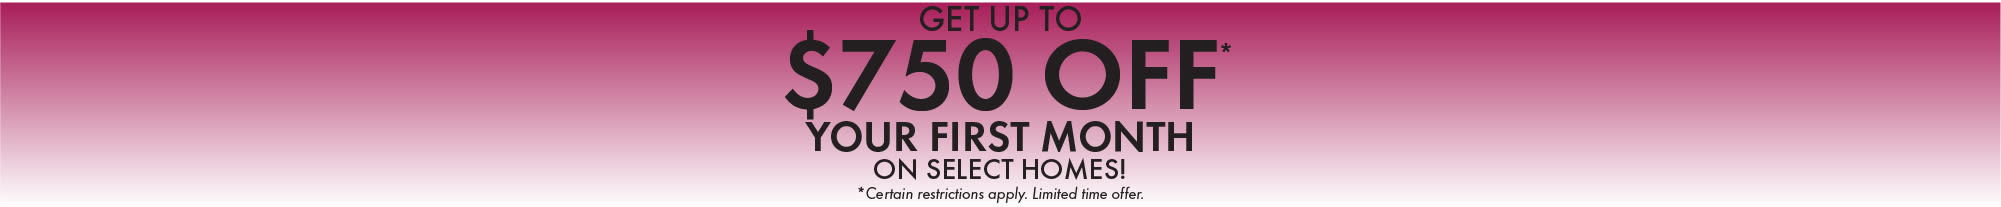 Special offer from Fox Chase South in Southgate, Kentucky